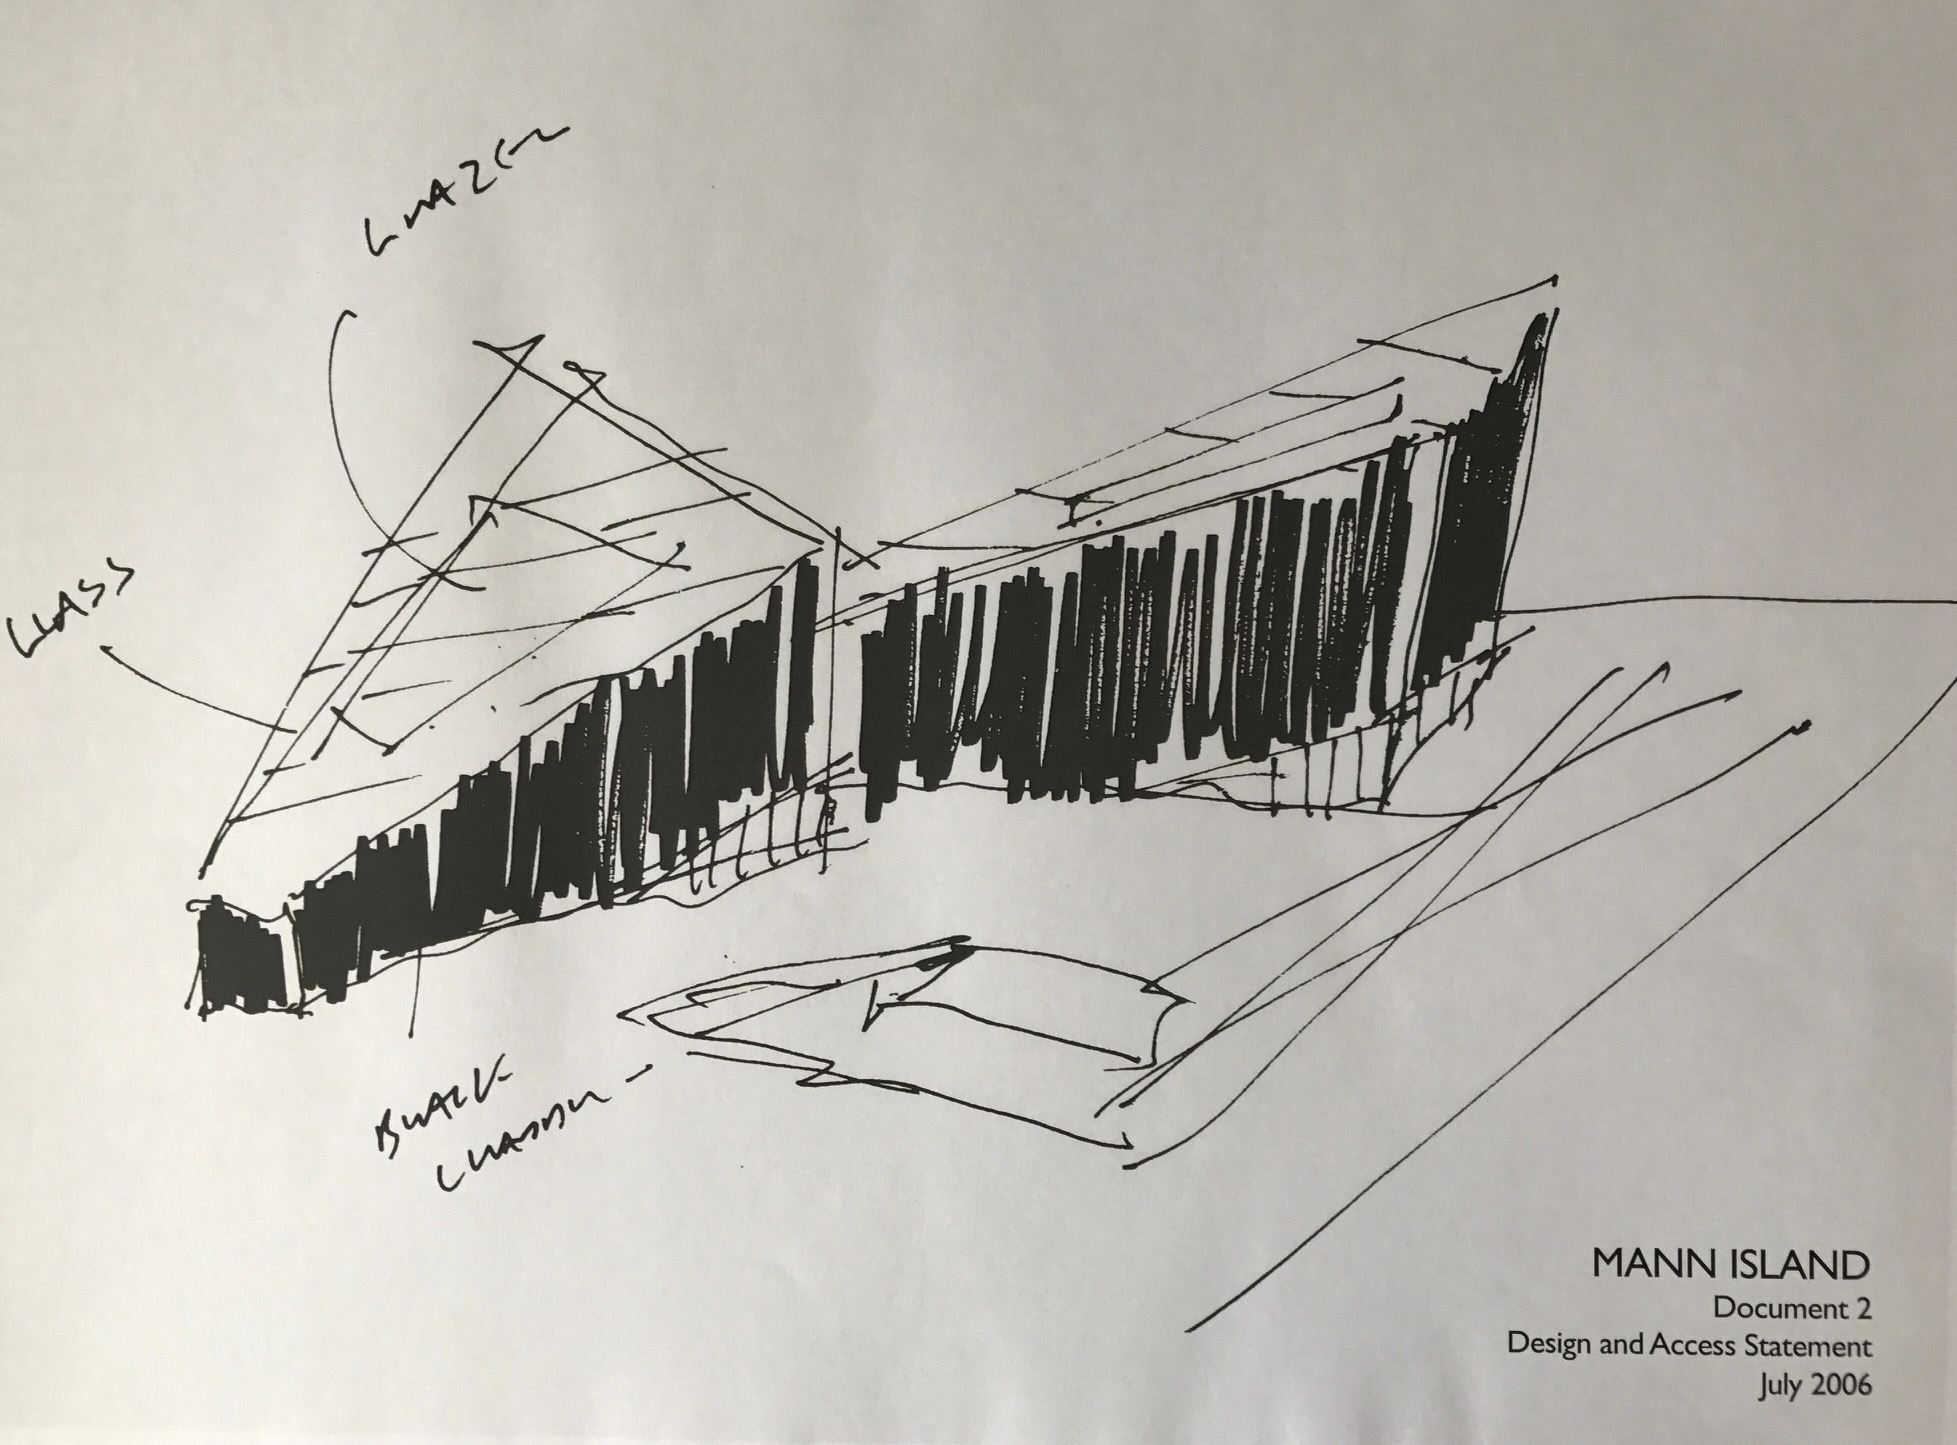 Matt Brook of Broadway Malyan Architects used his original sketch of the scheme for the Design and Access Statement back in 2006